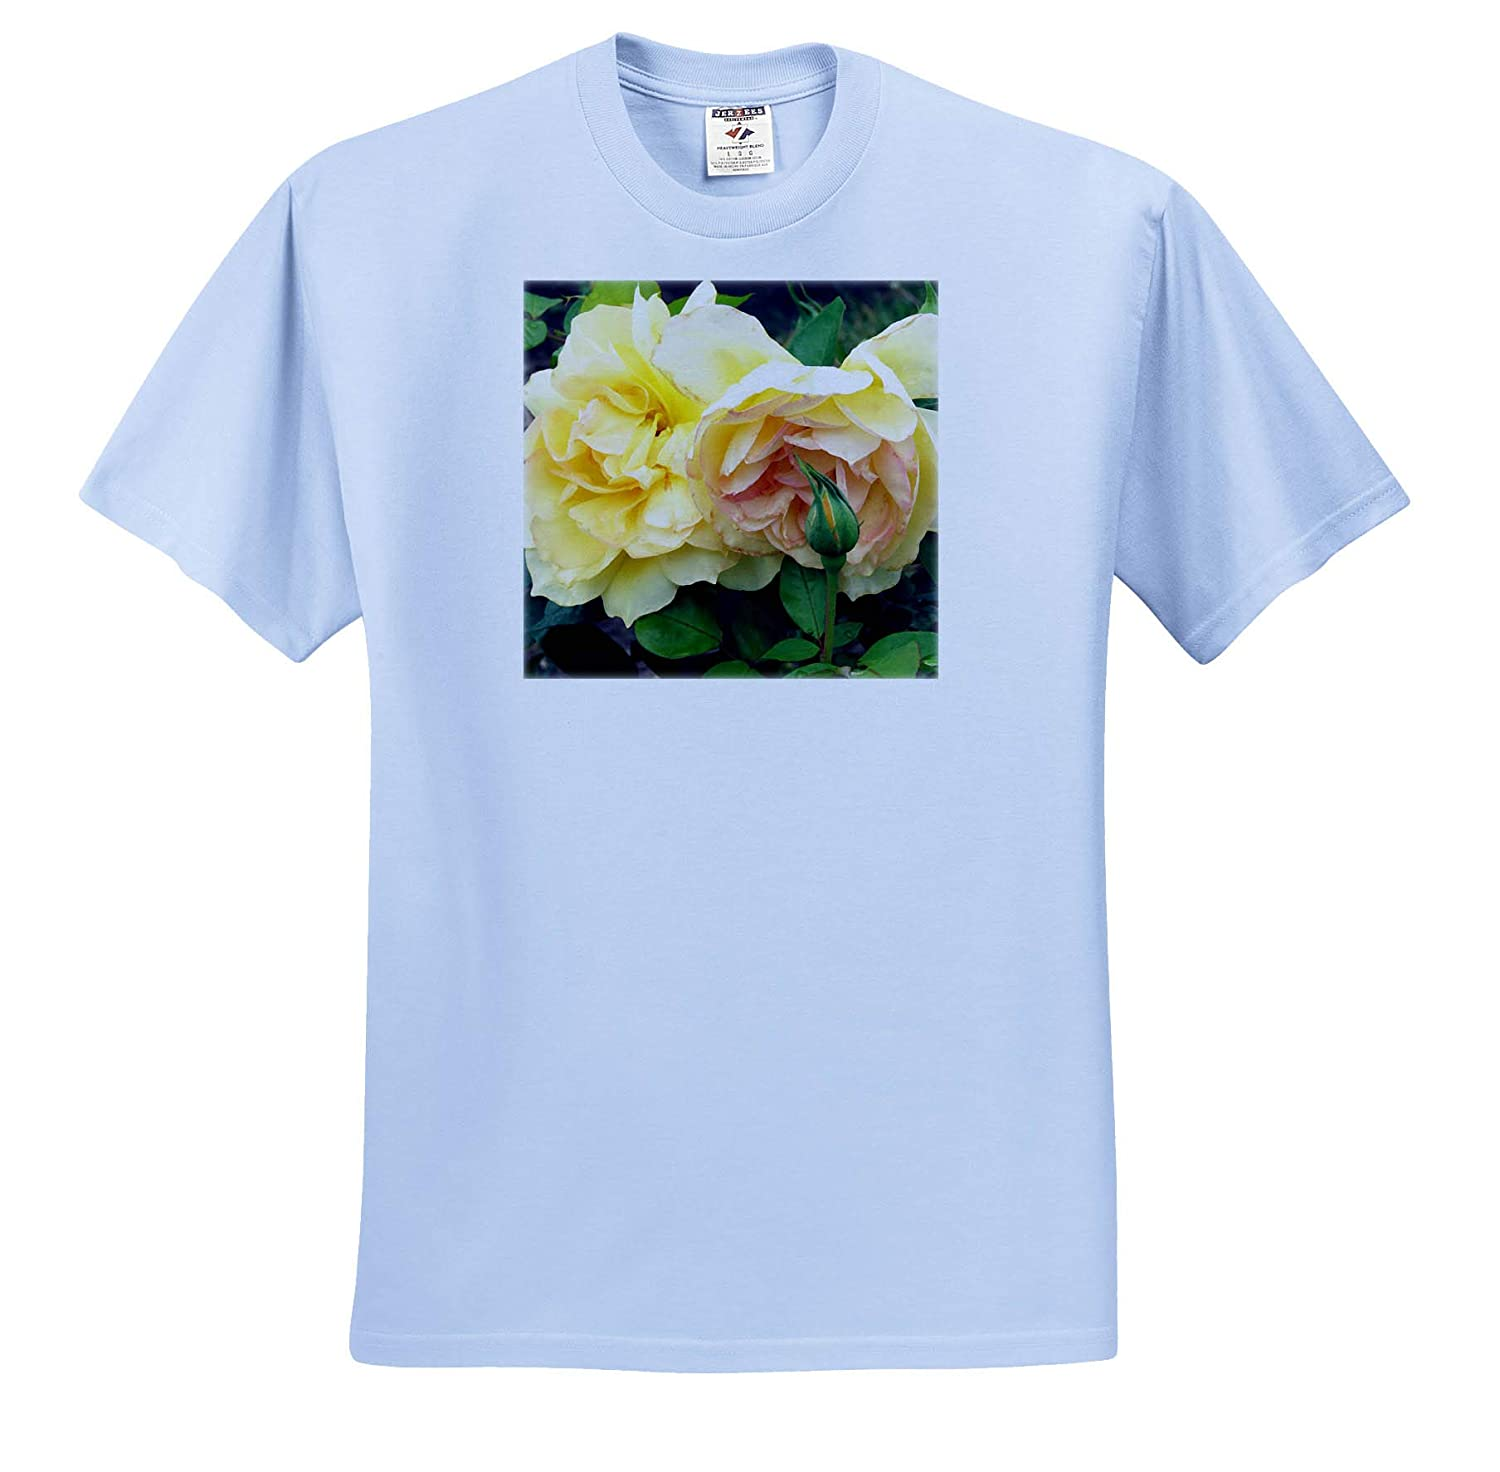 3dRose Jos Fauxtographee Two Lemon Colored Roses with Green Leaves T-Shirts Lemony Blonde Rose